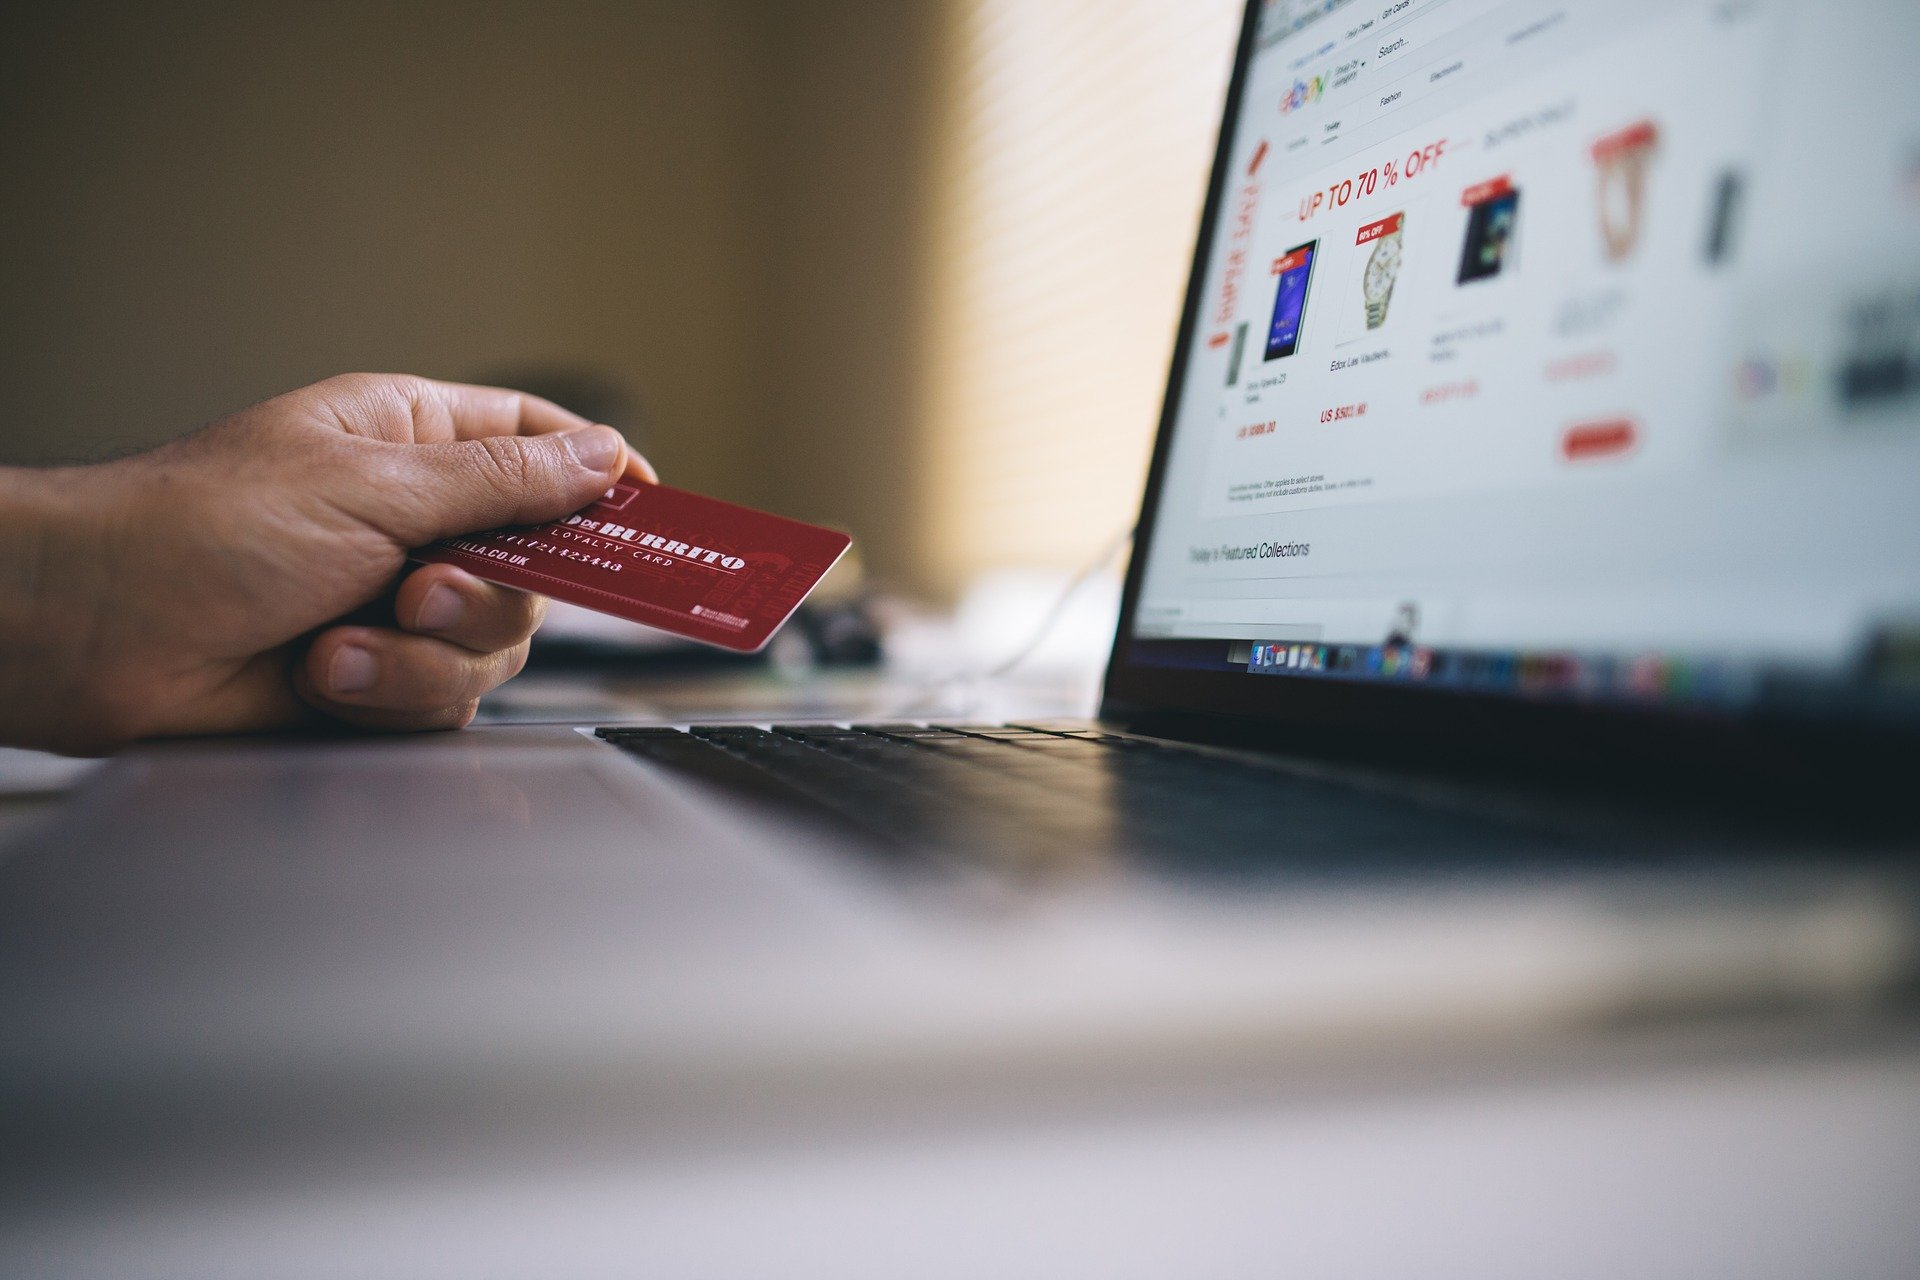 different ways to improve e-commerce sales